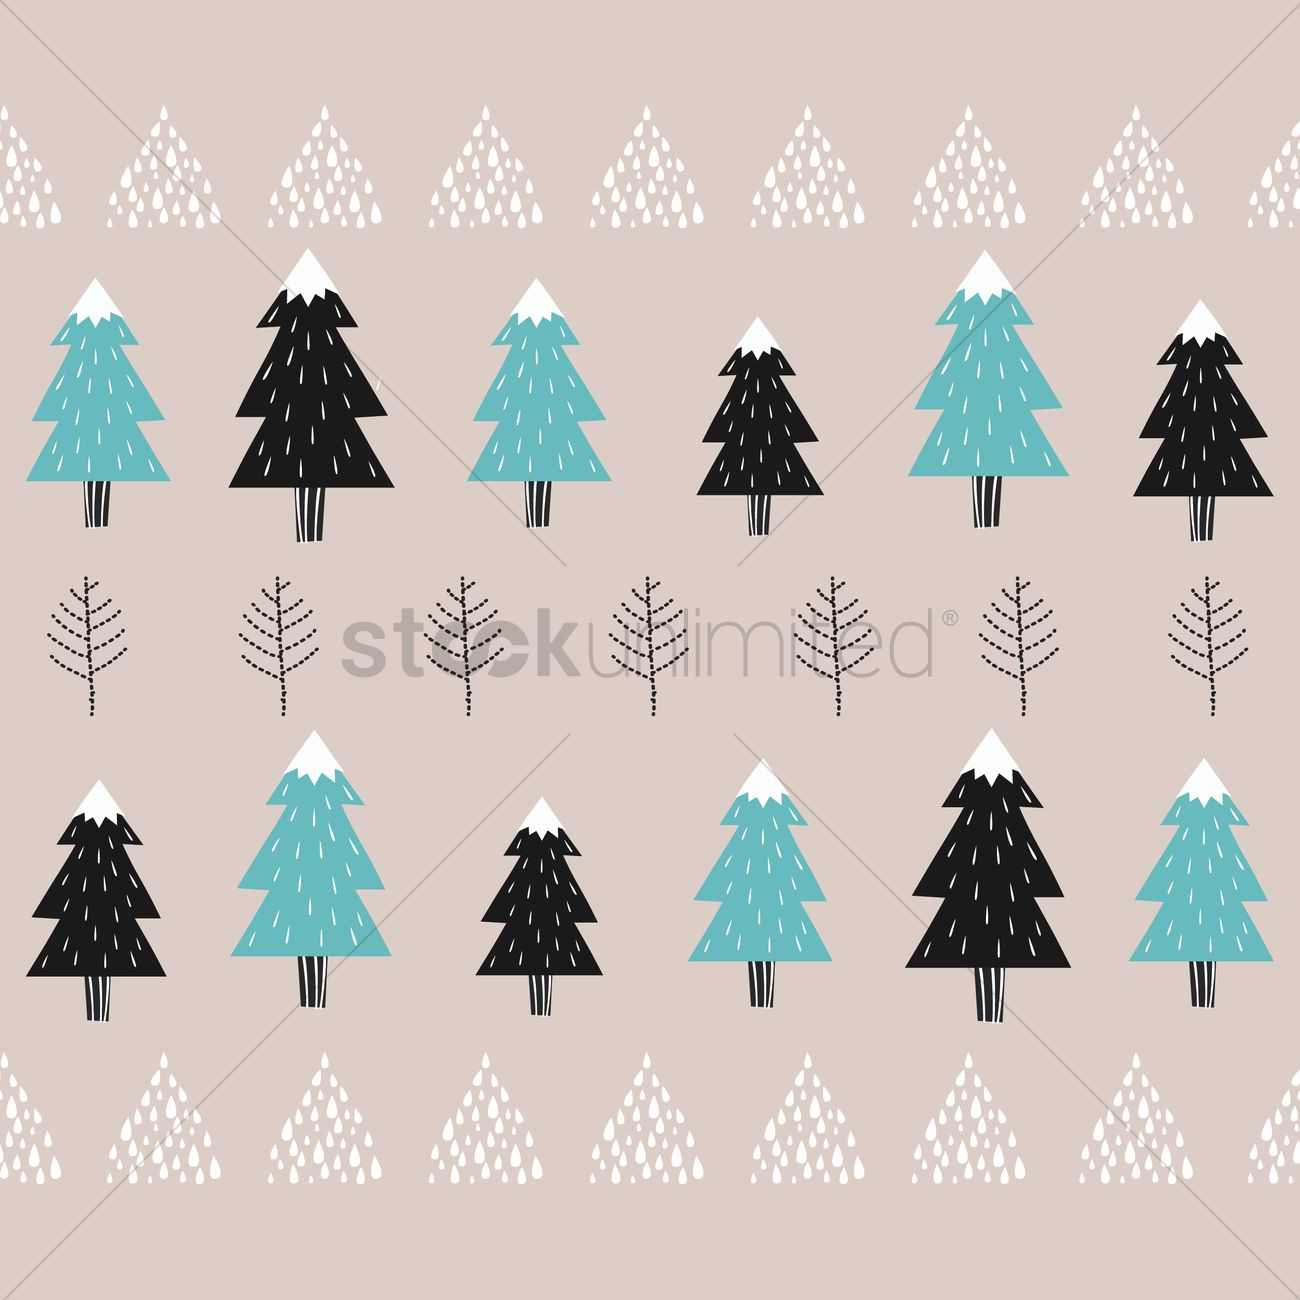 Pine Trees Background Design Vector Image 1975079 Stockunlimited